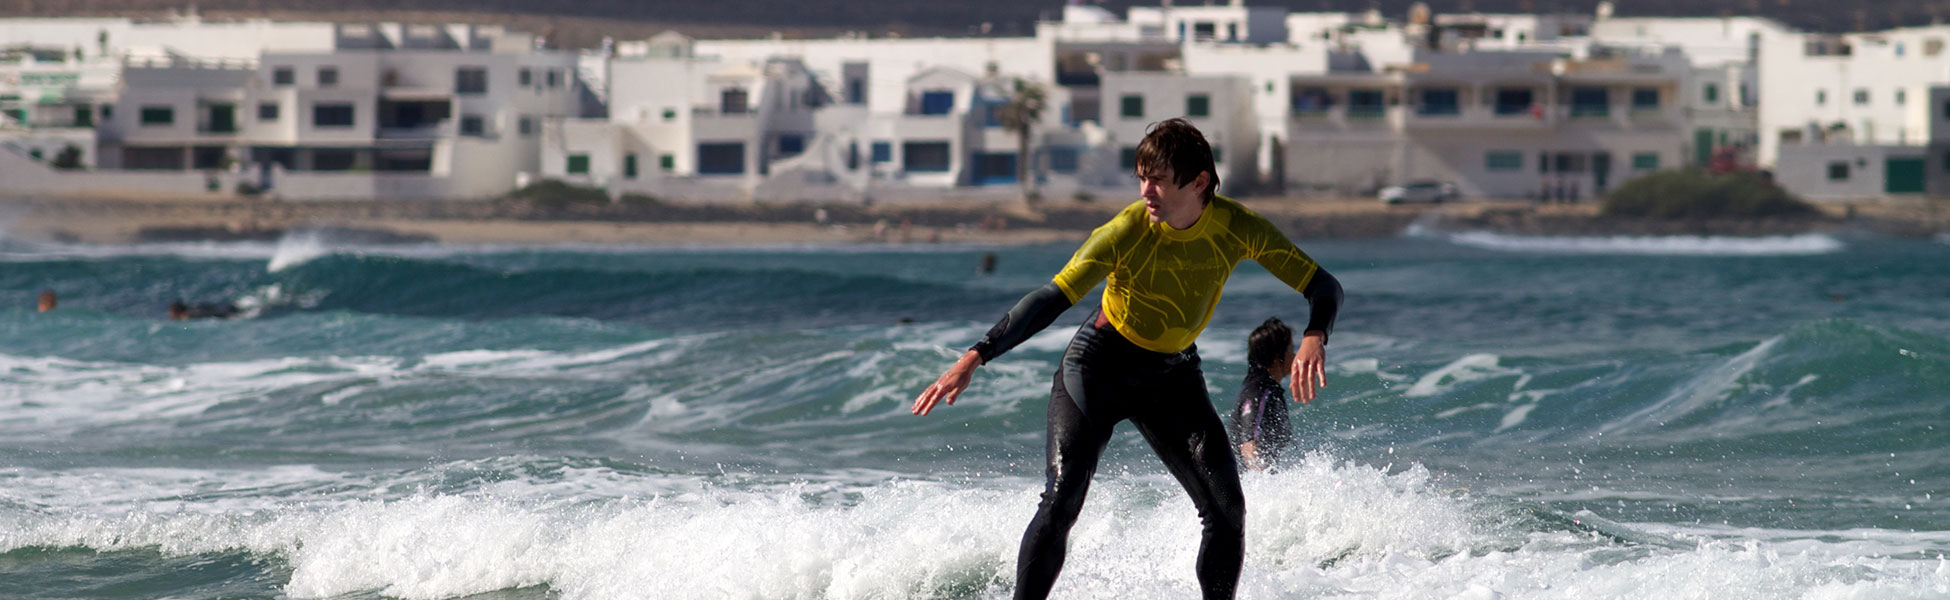 surfing lessons lanzarote